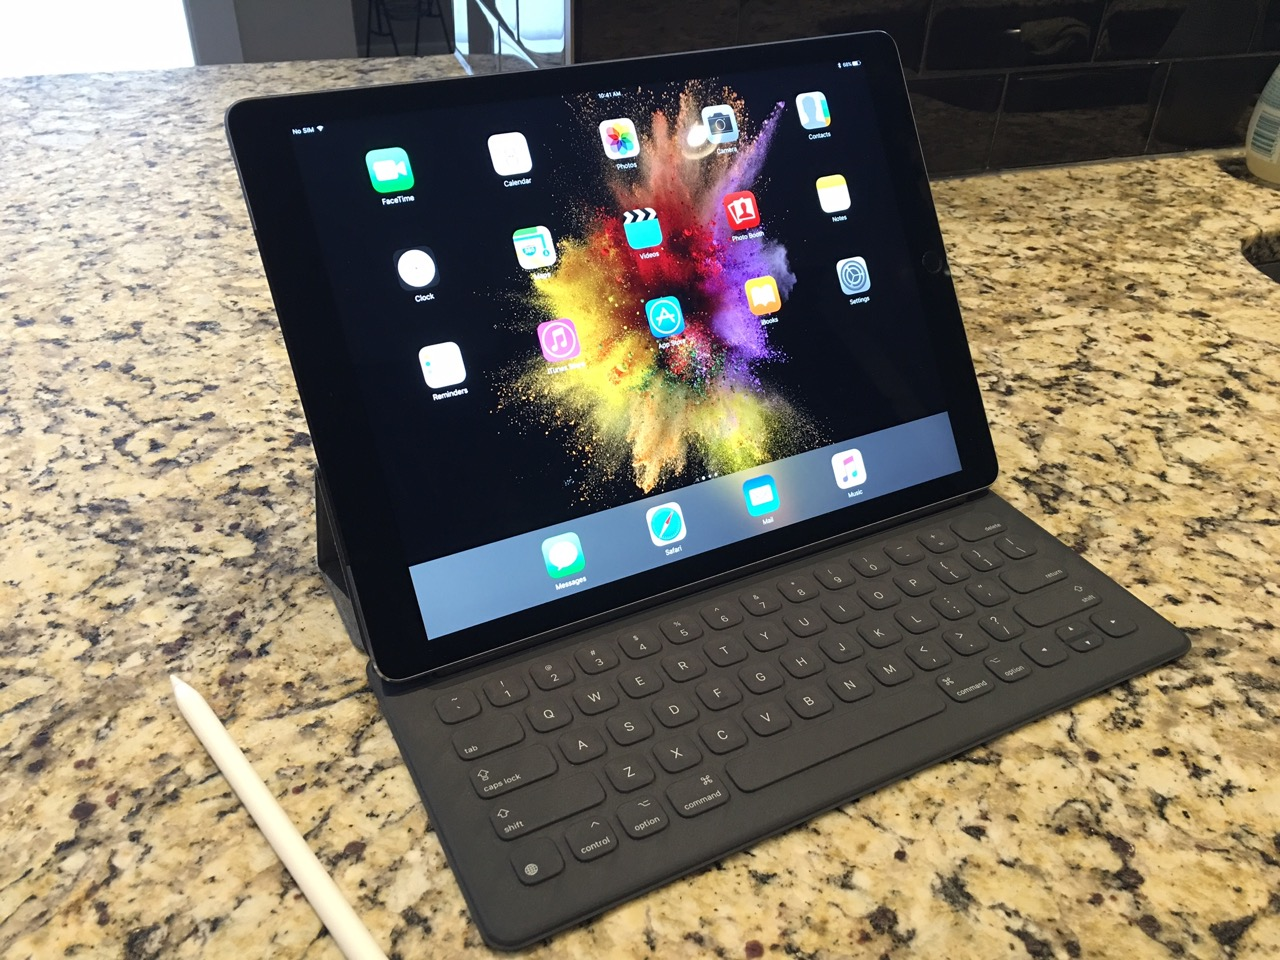 How to use a mouse with the ipad pro